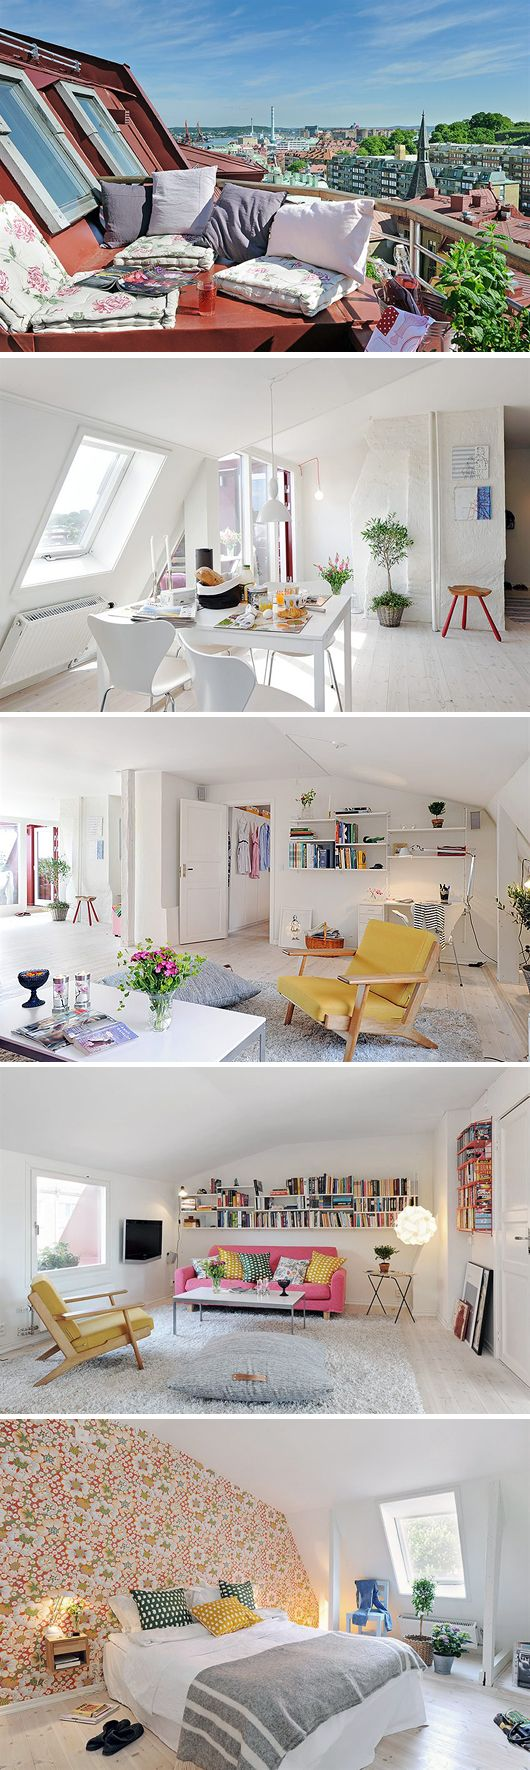 Decorating small spaces.